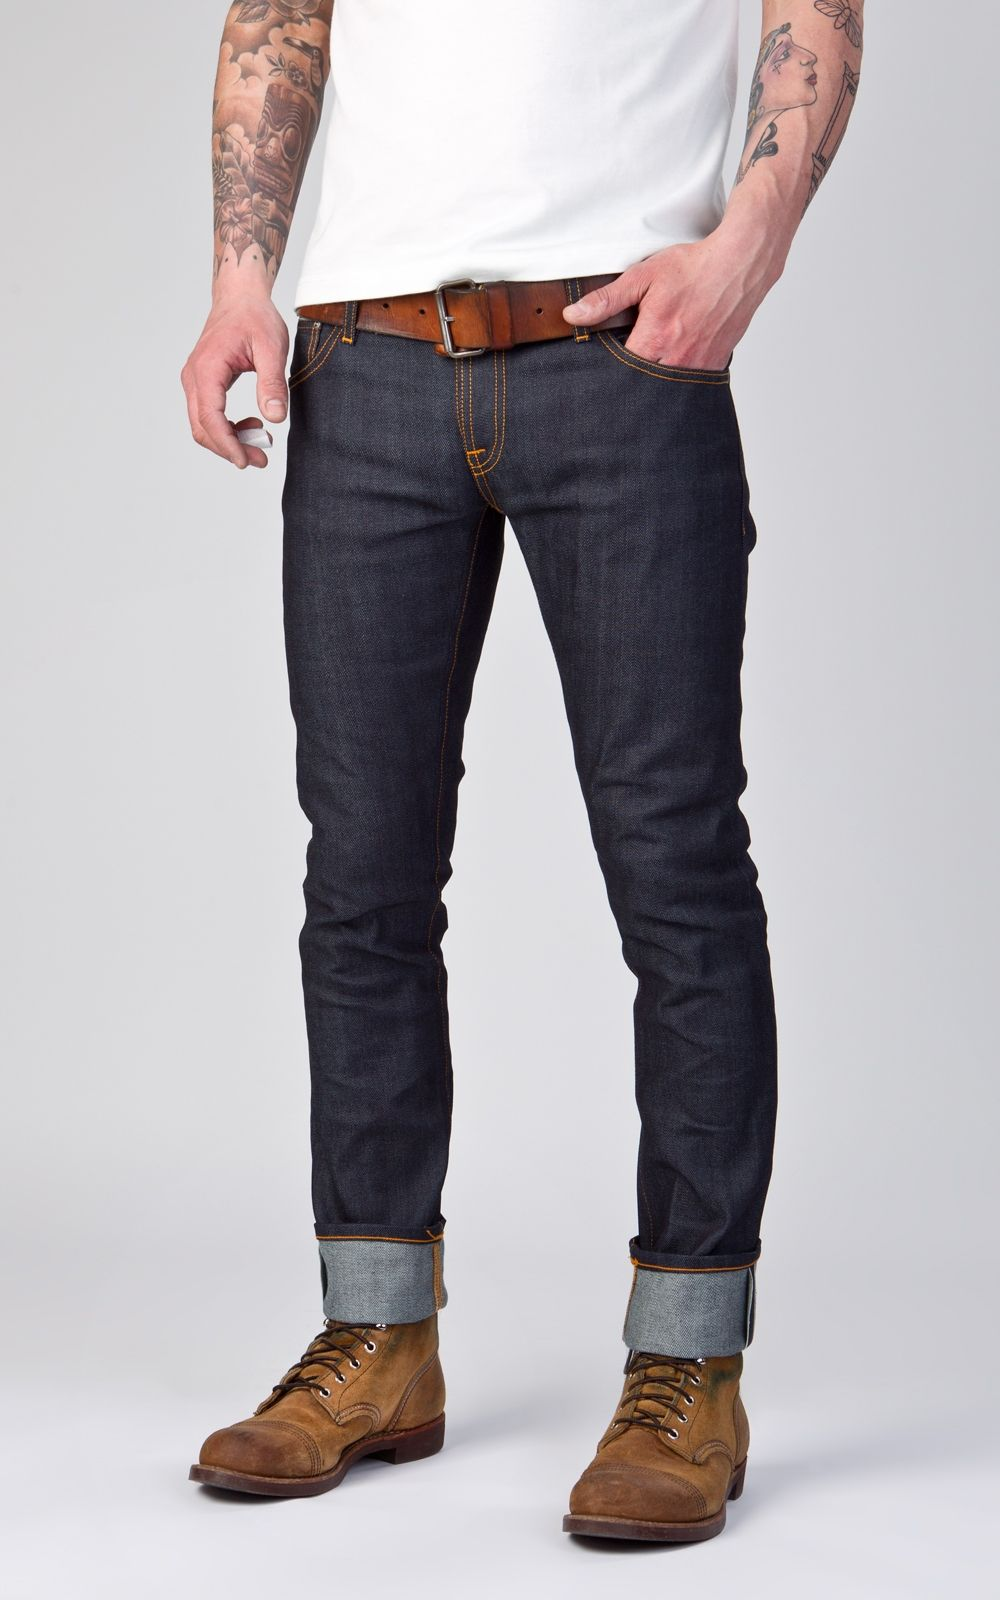 Nudie Jeans at Cultizm - The Denim Online Store  Nudie is a Swedish denim  brand that started in 2001.They love jeans 155516f48b0